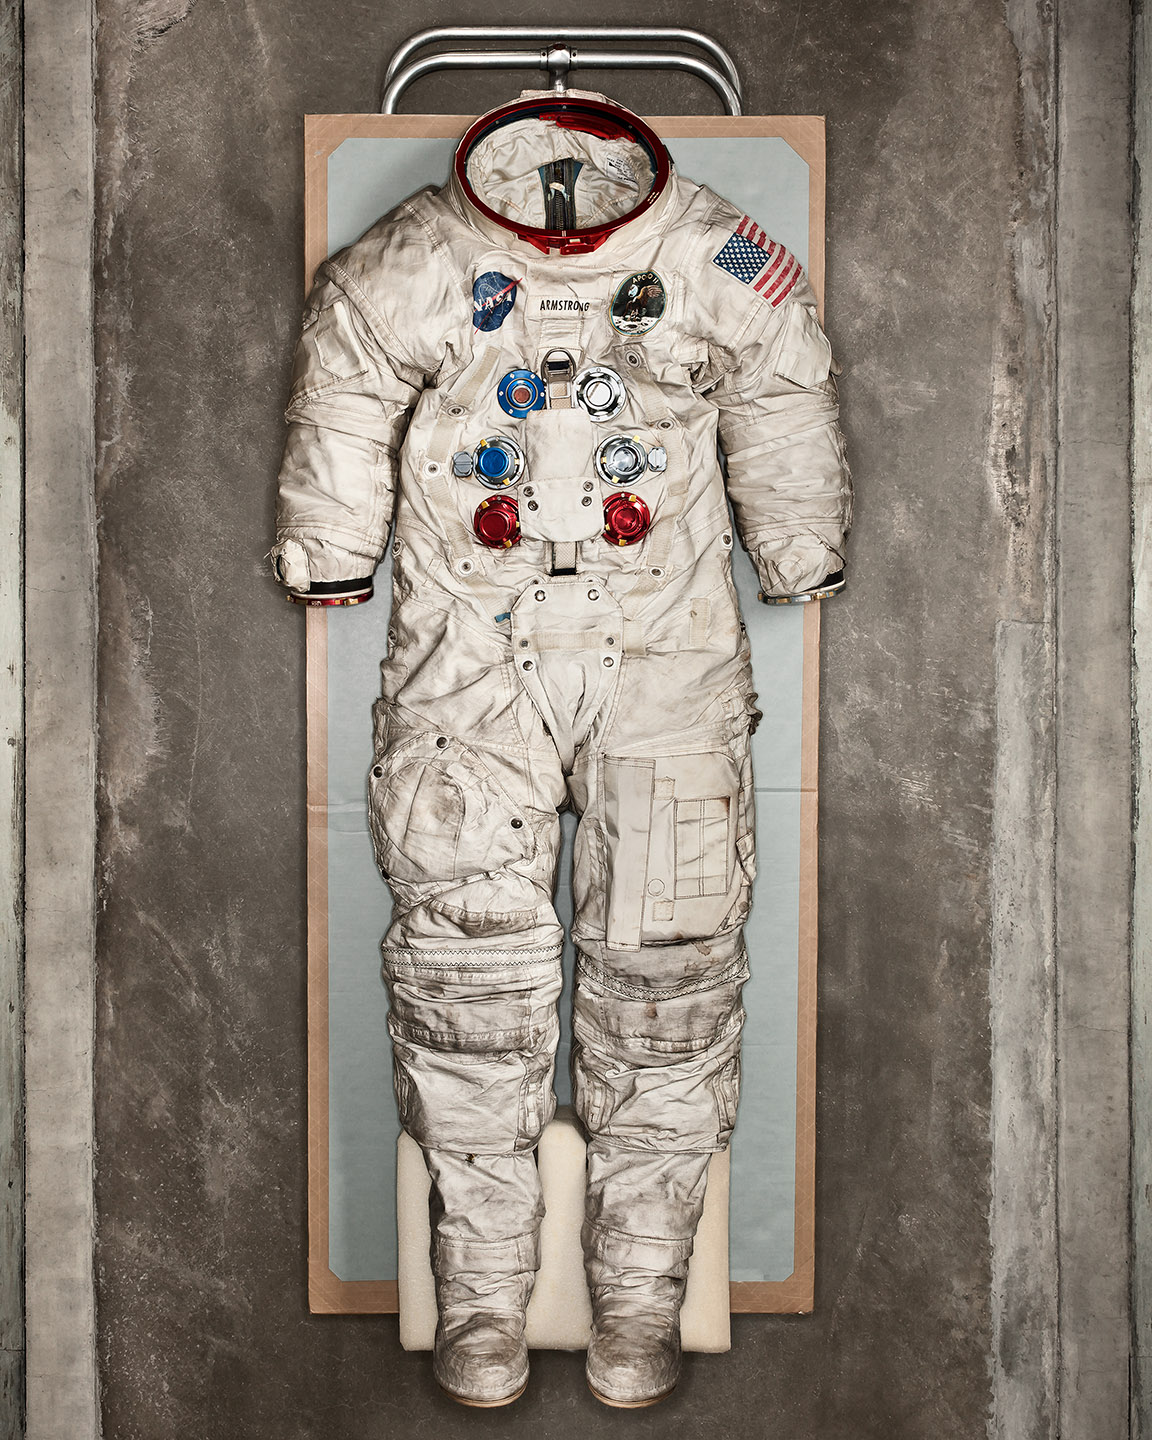 0-armstrong_space_suit_8102_BIG